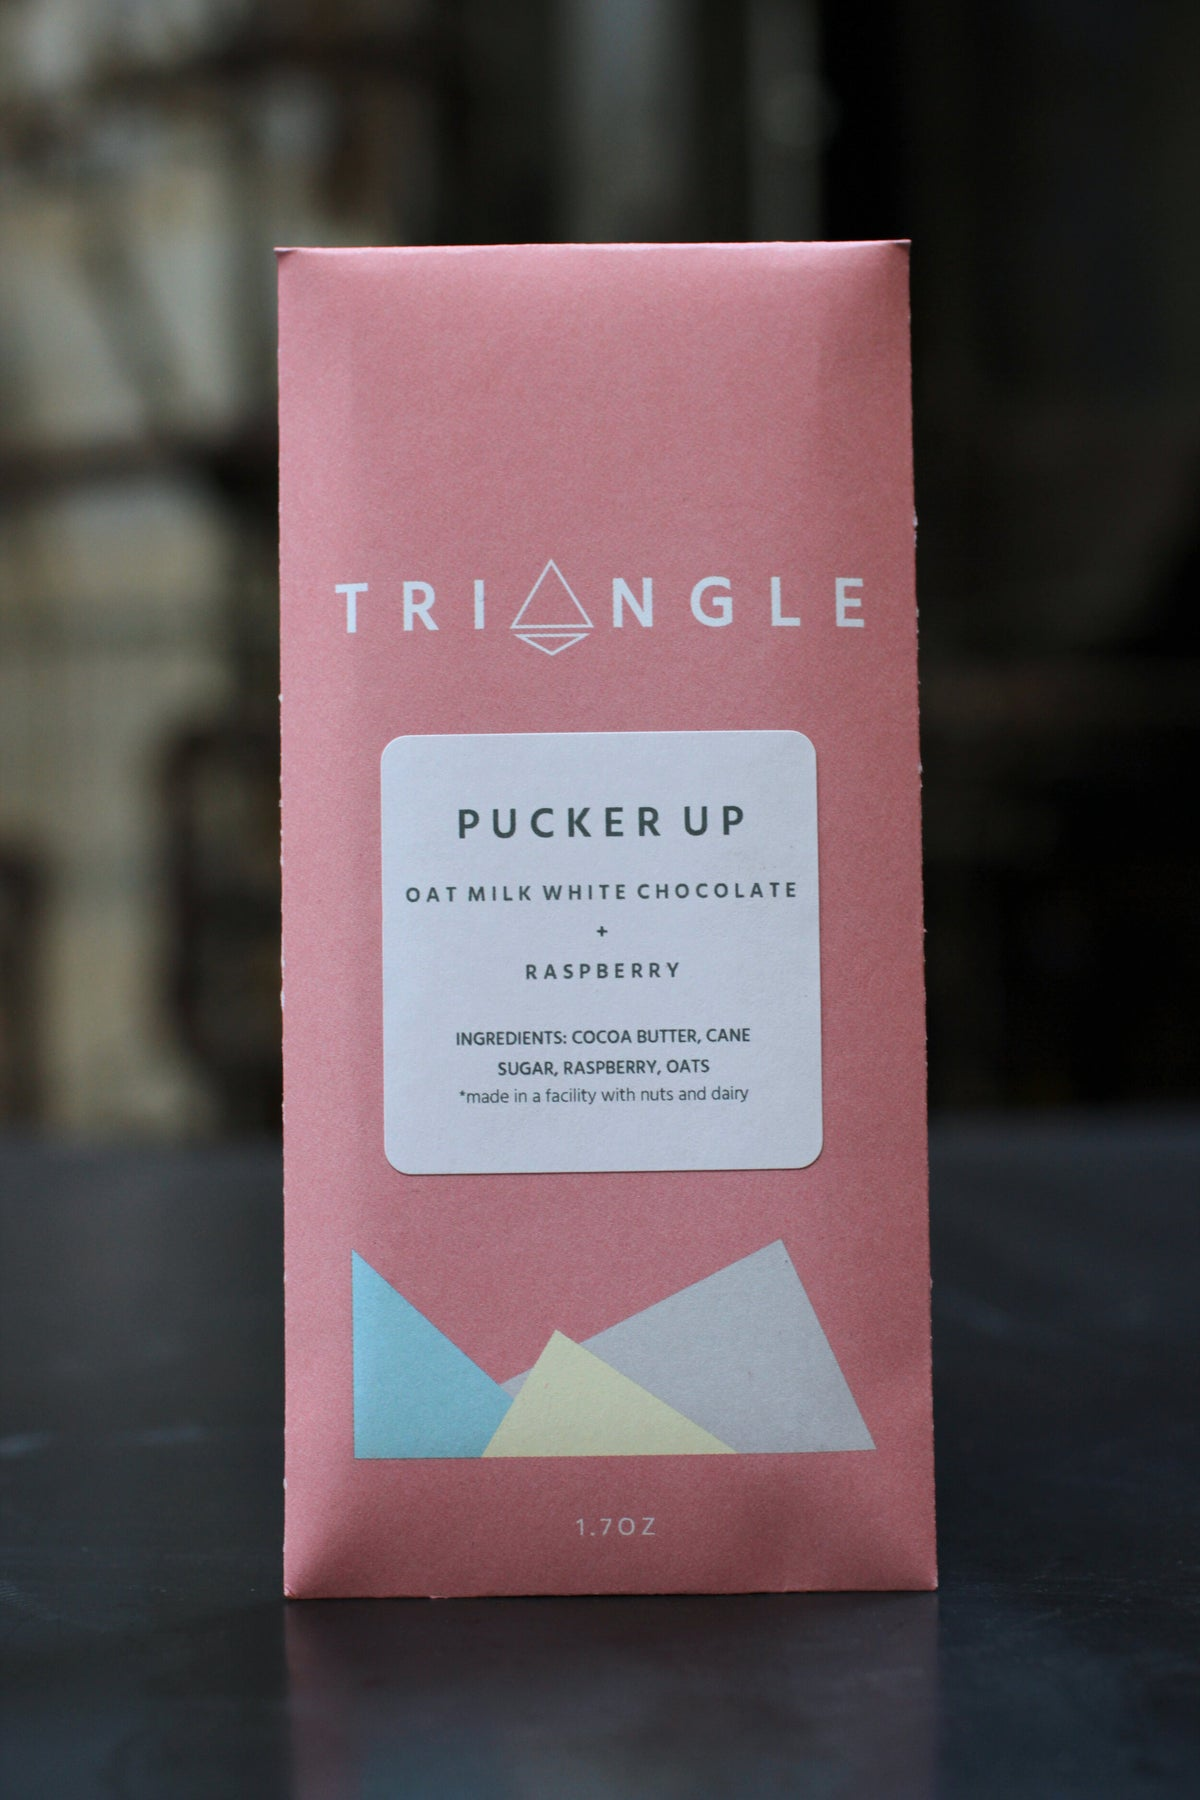 Triangle Pucker Up Oat Milk White Chocolate With Raspberries